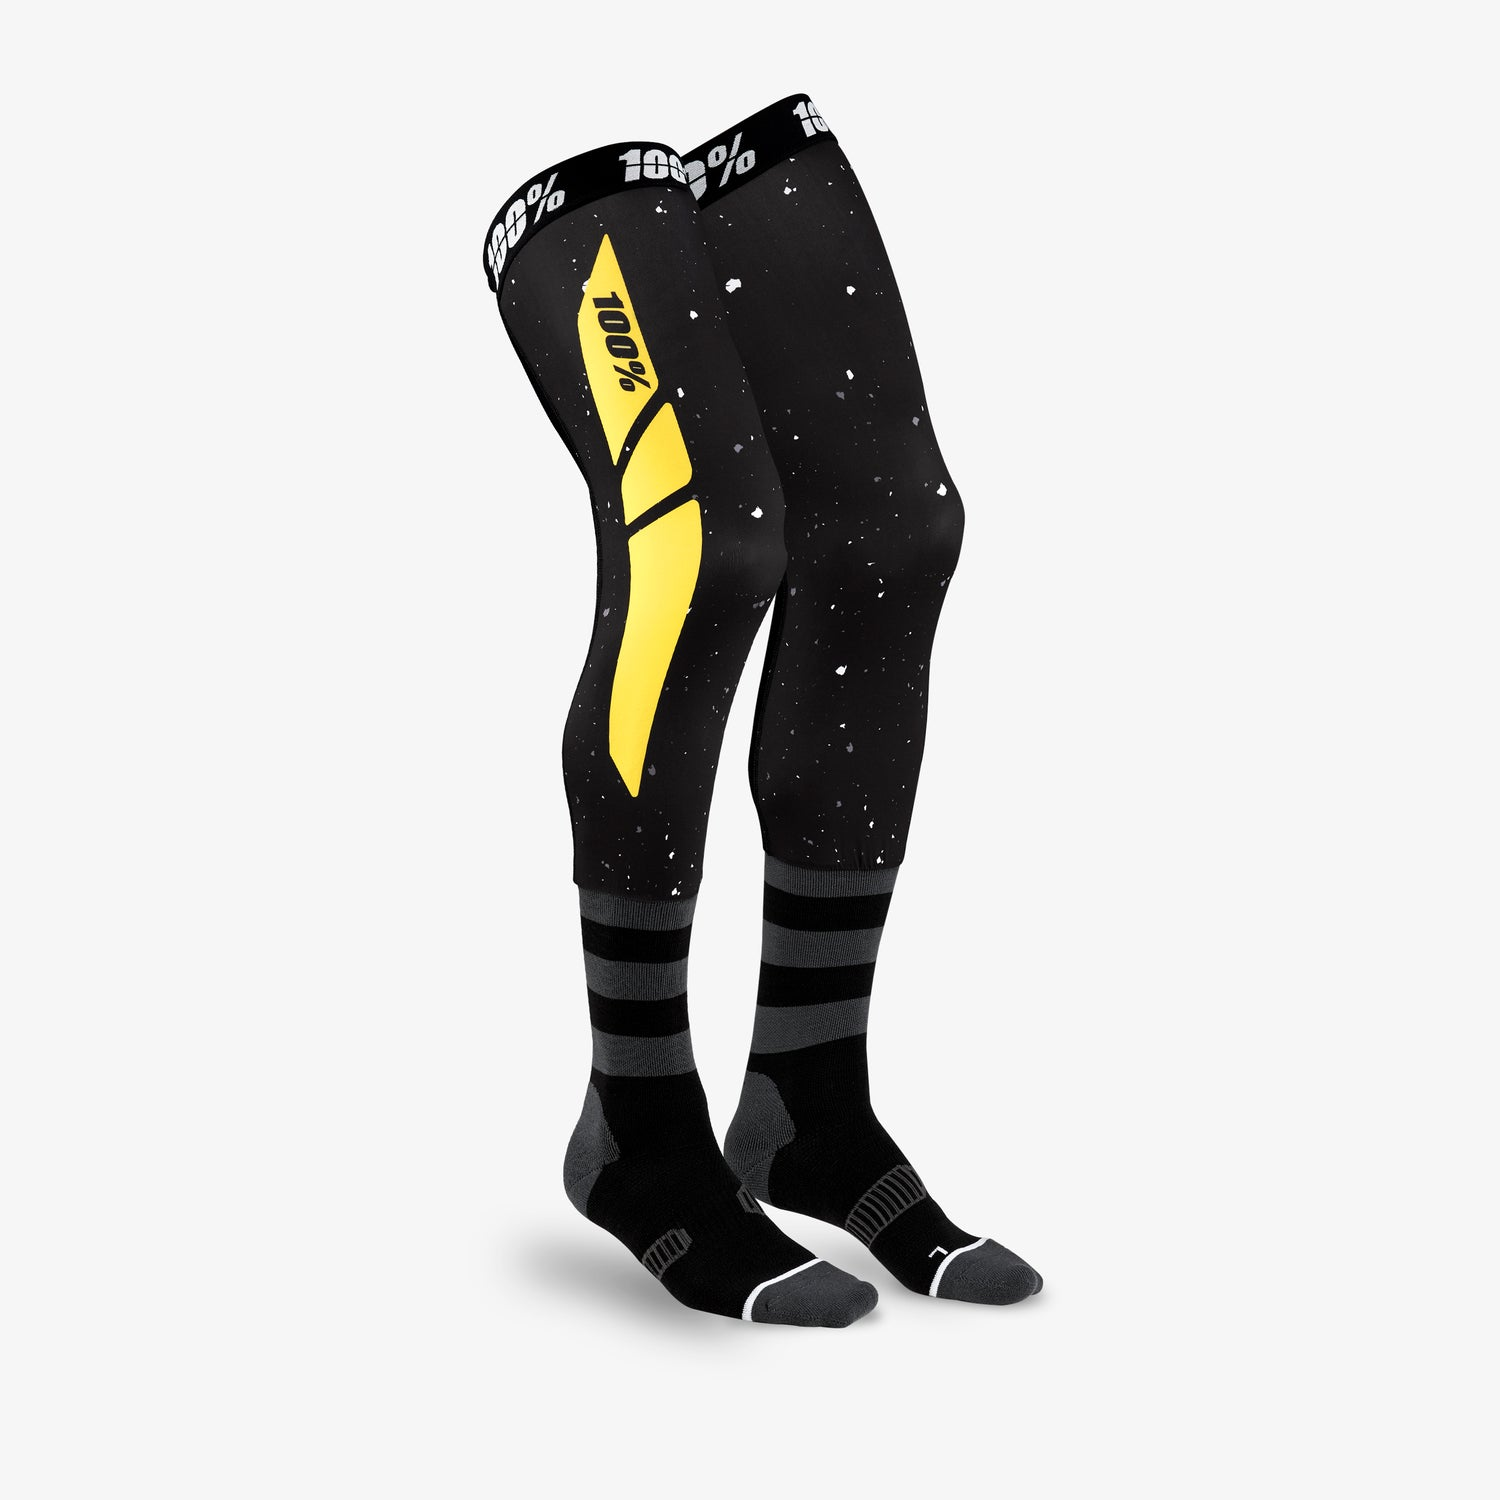 REV Knee Brace Performance Moto Socks Black/Yellow